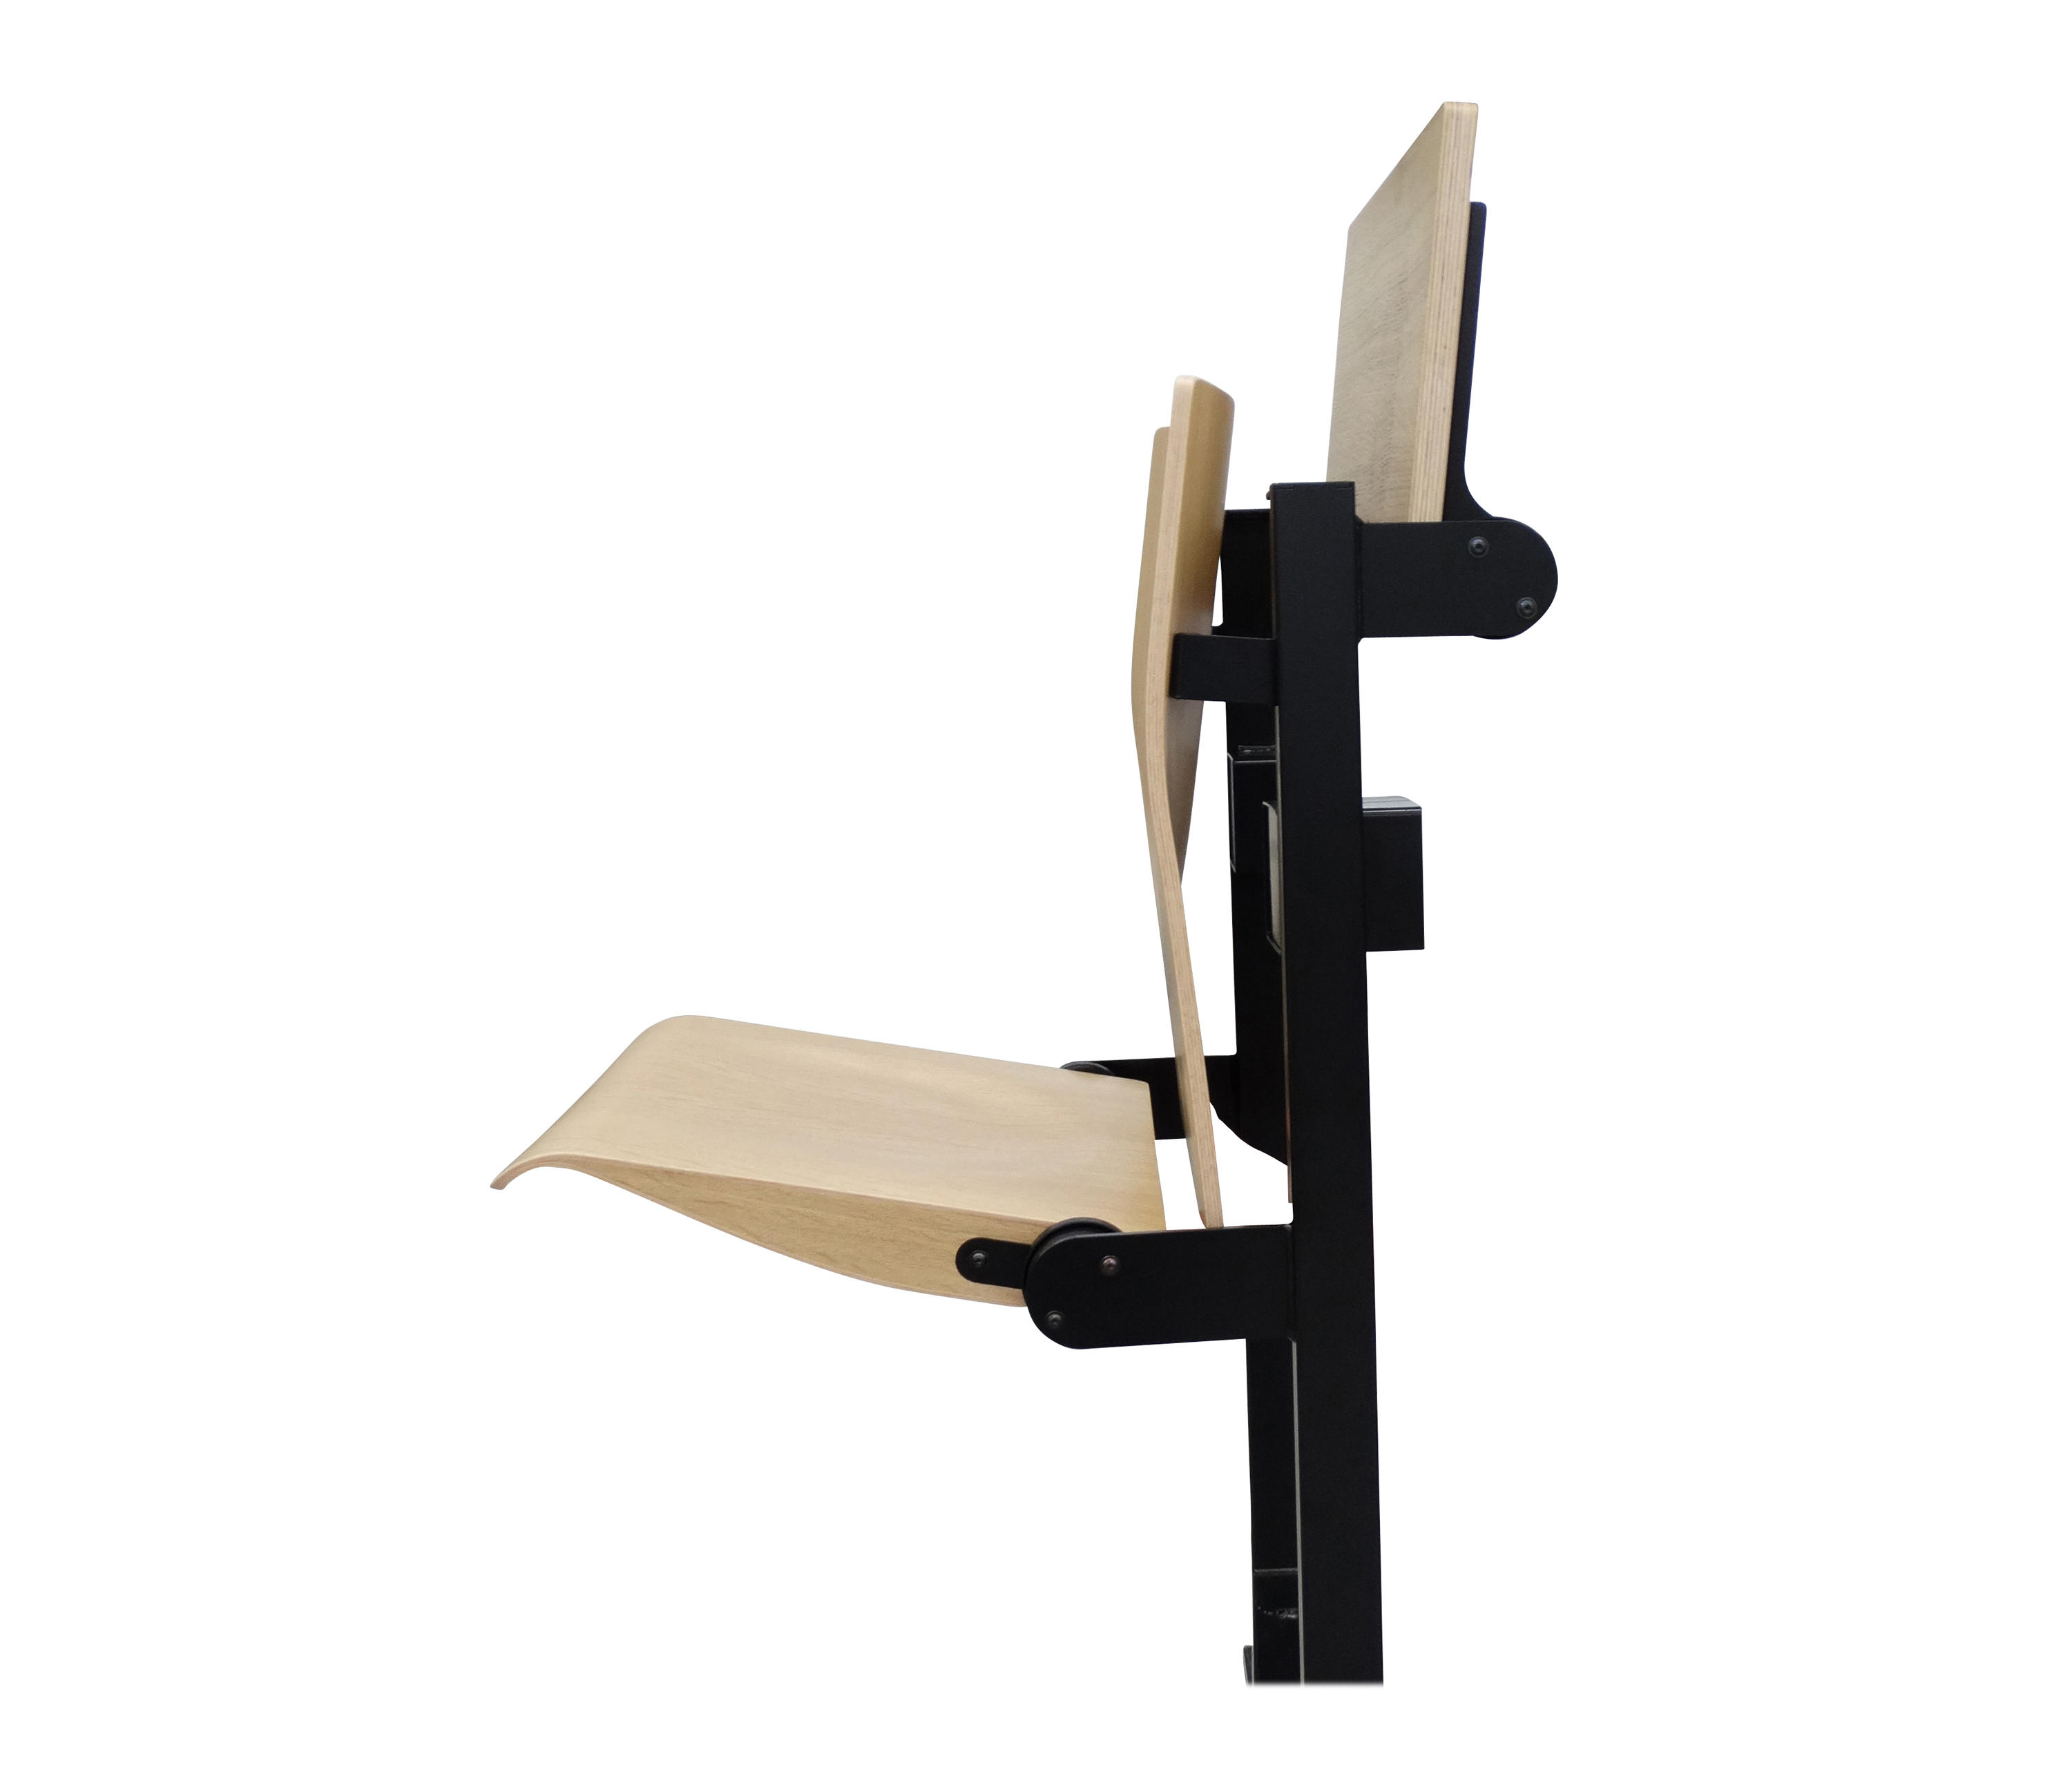 Technostep Seating Basic Auditorium Seating From